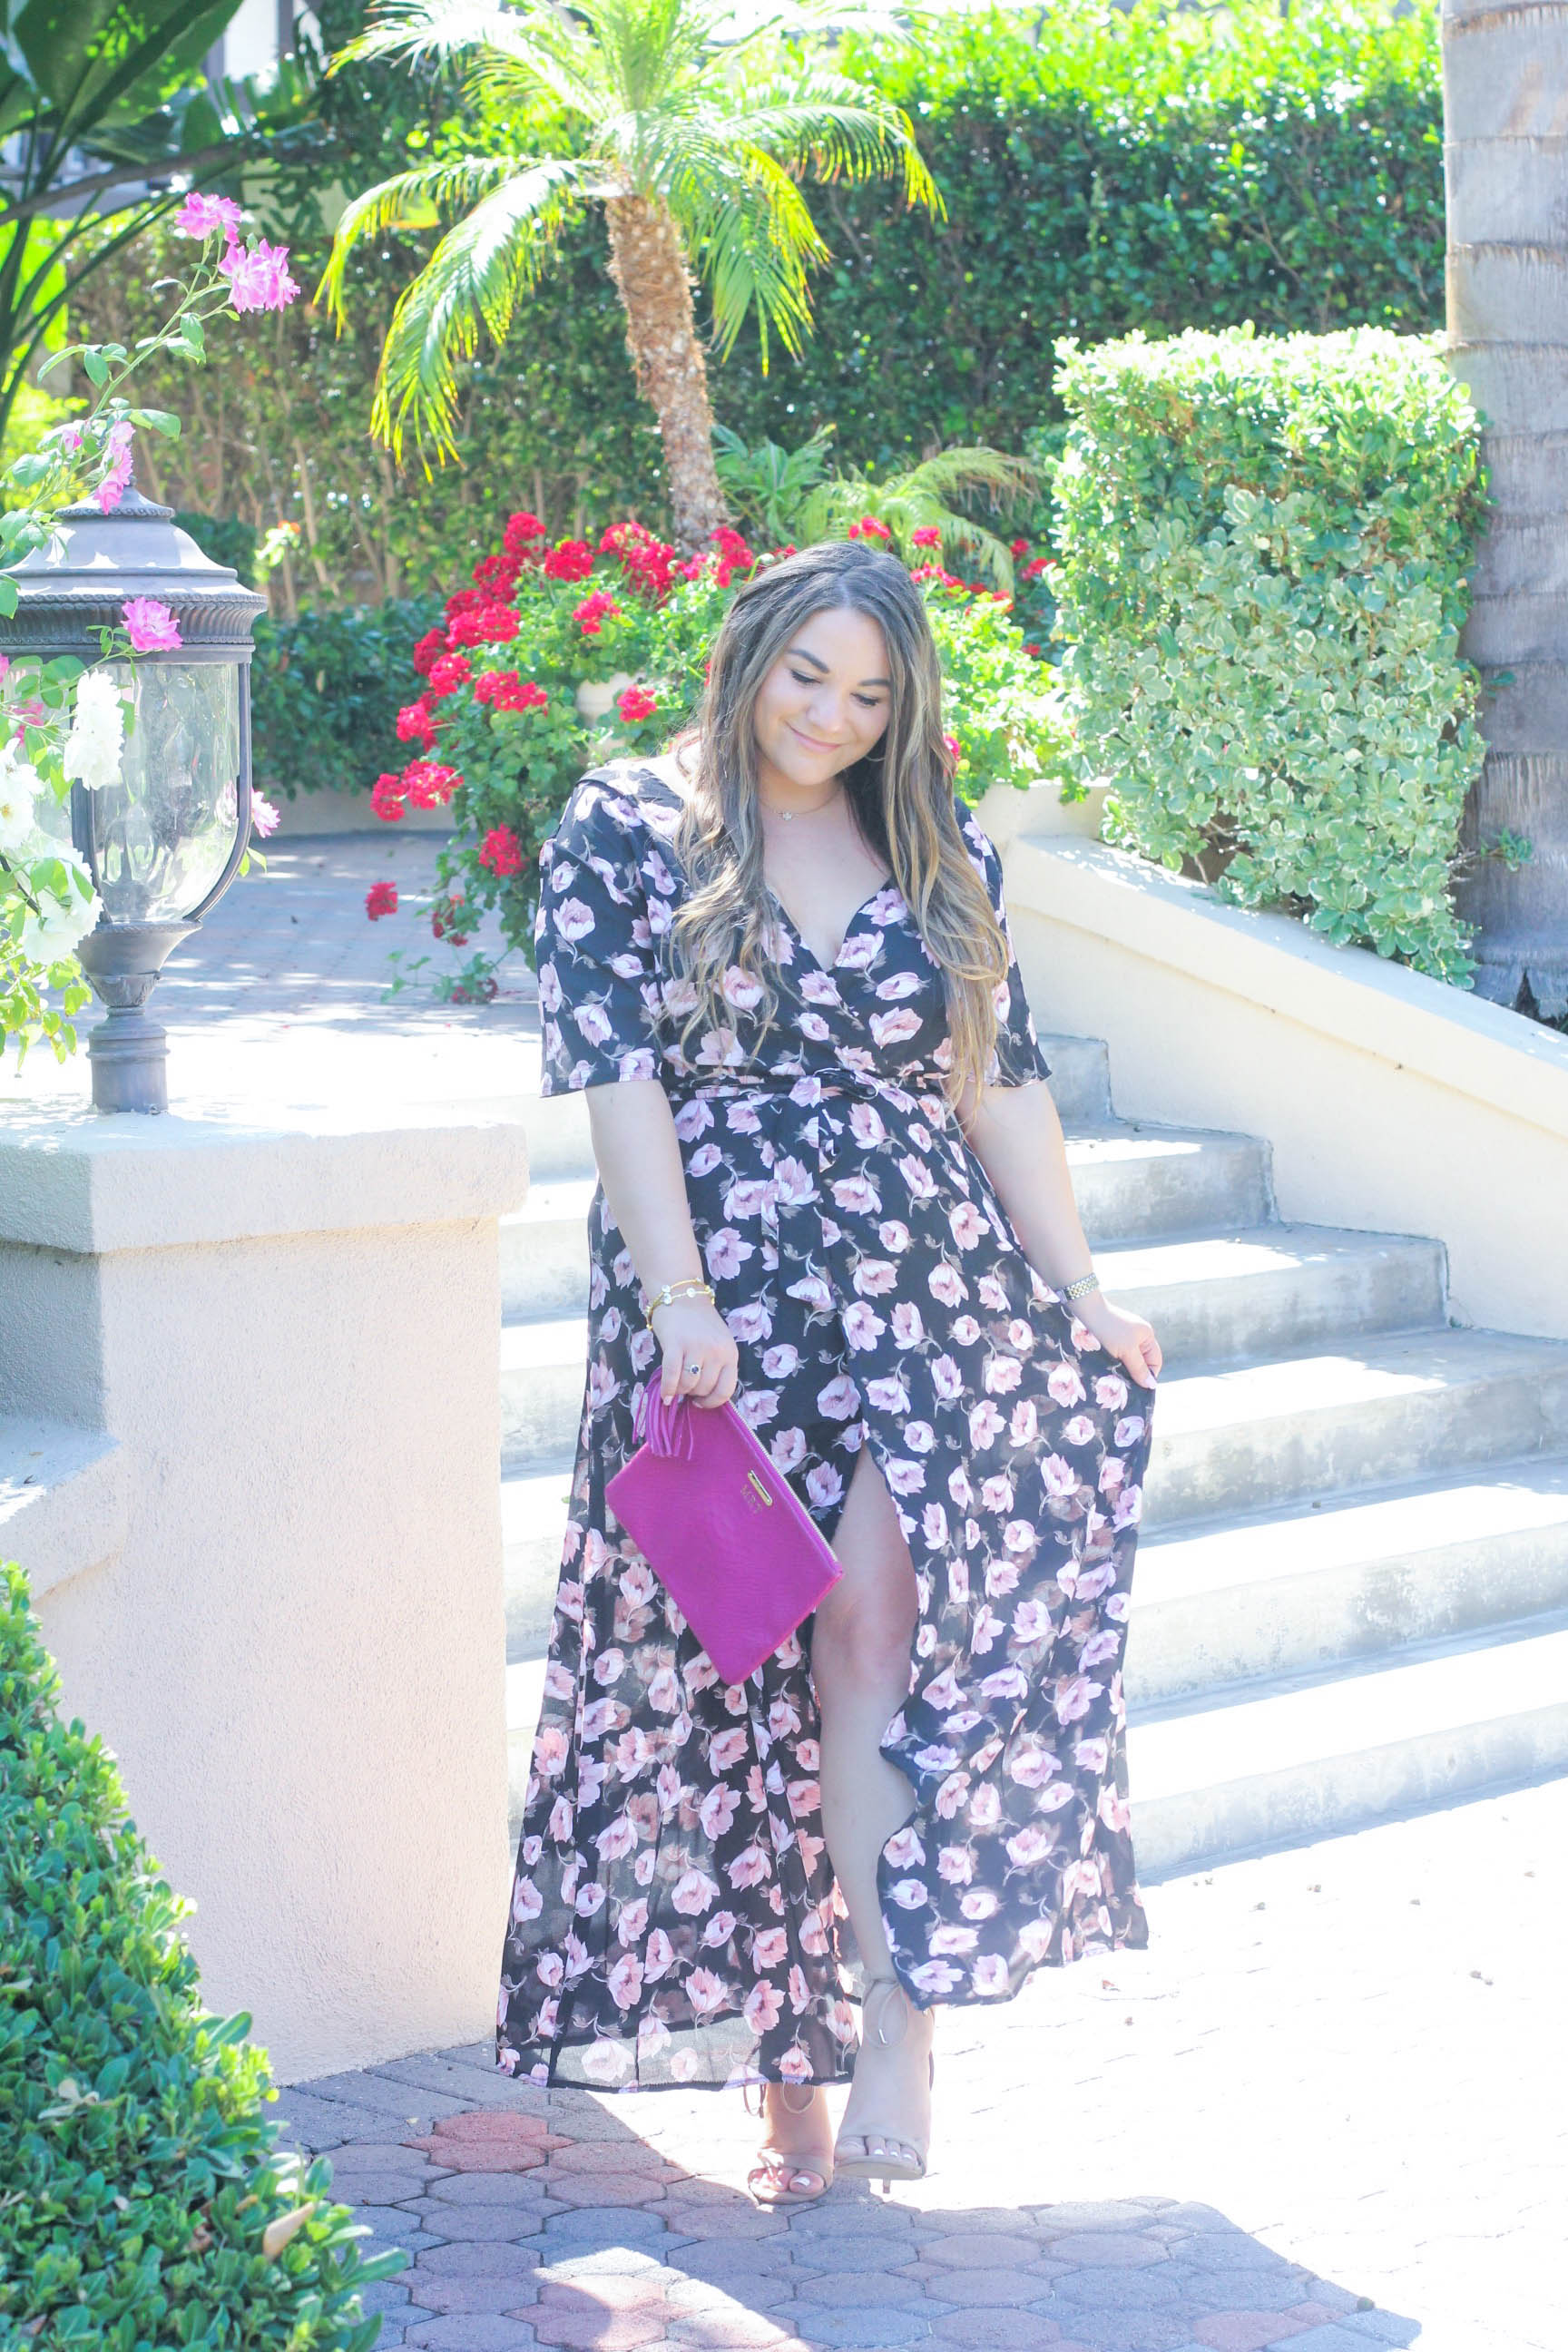 missyonmadison, melissa tierney, ami clubwear, floral maxi dress, ami clubwear maxi dress, fashion blogger, style blogger, fall style, la blogger, fall fashion, fall 2016 trends, ootd, fall outfit inspo, gigi ny, magenta clutch, gigi ny magenta clutch, nude lace up heels, nude heels,